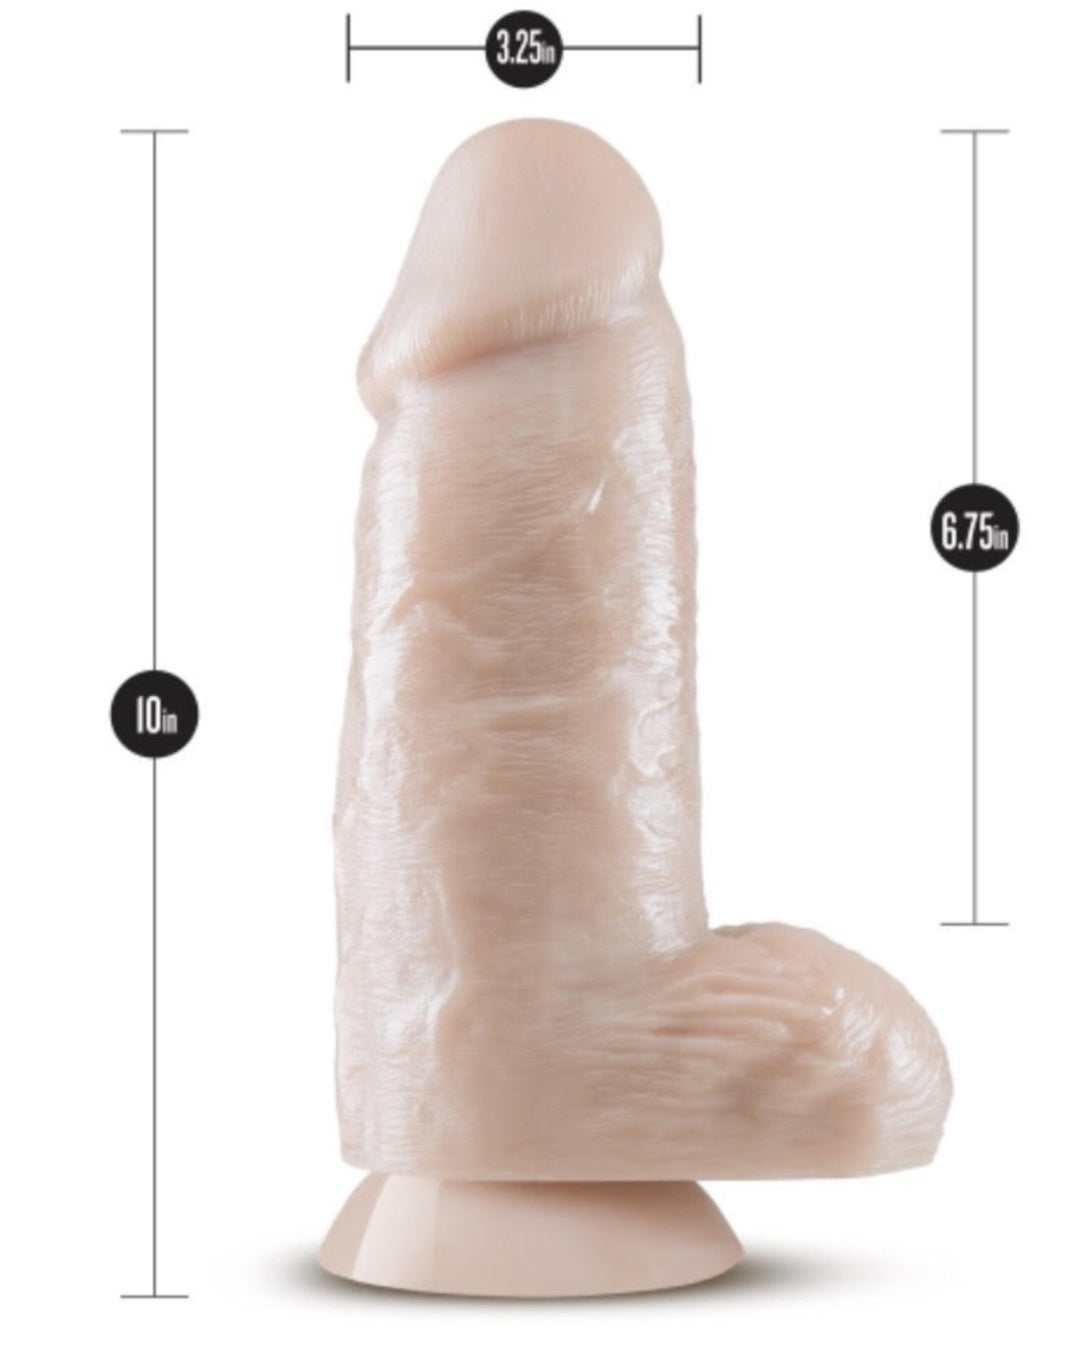 Dr Skin Dr Chubbs 10 Inch Dildo with Suction Cup by Blush Novelties - Vanilla Dimensions